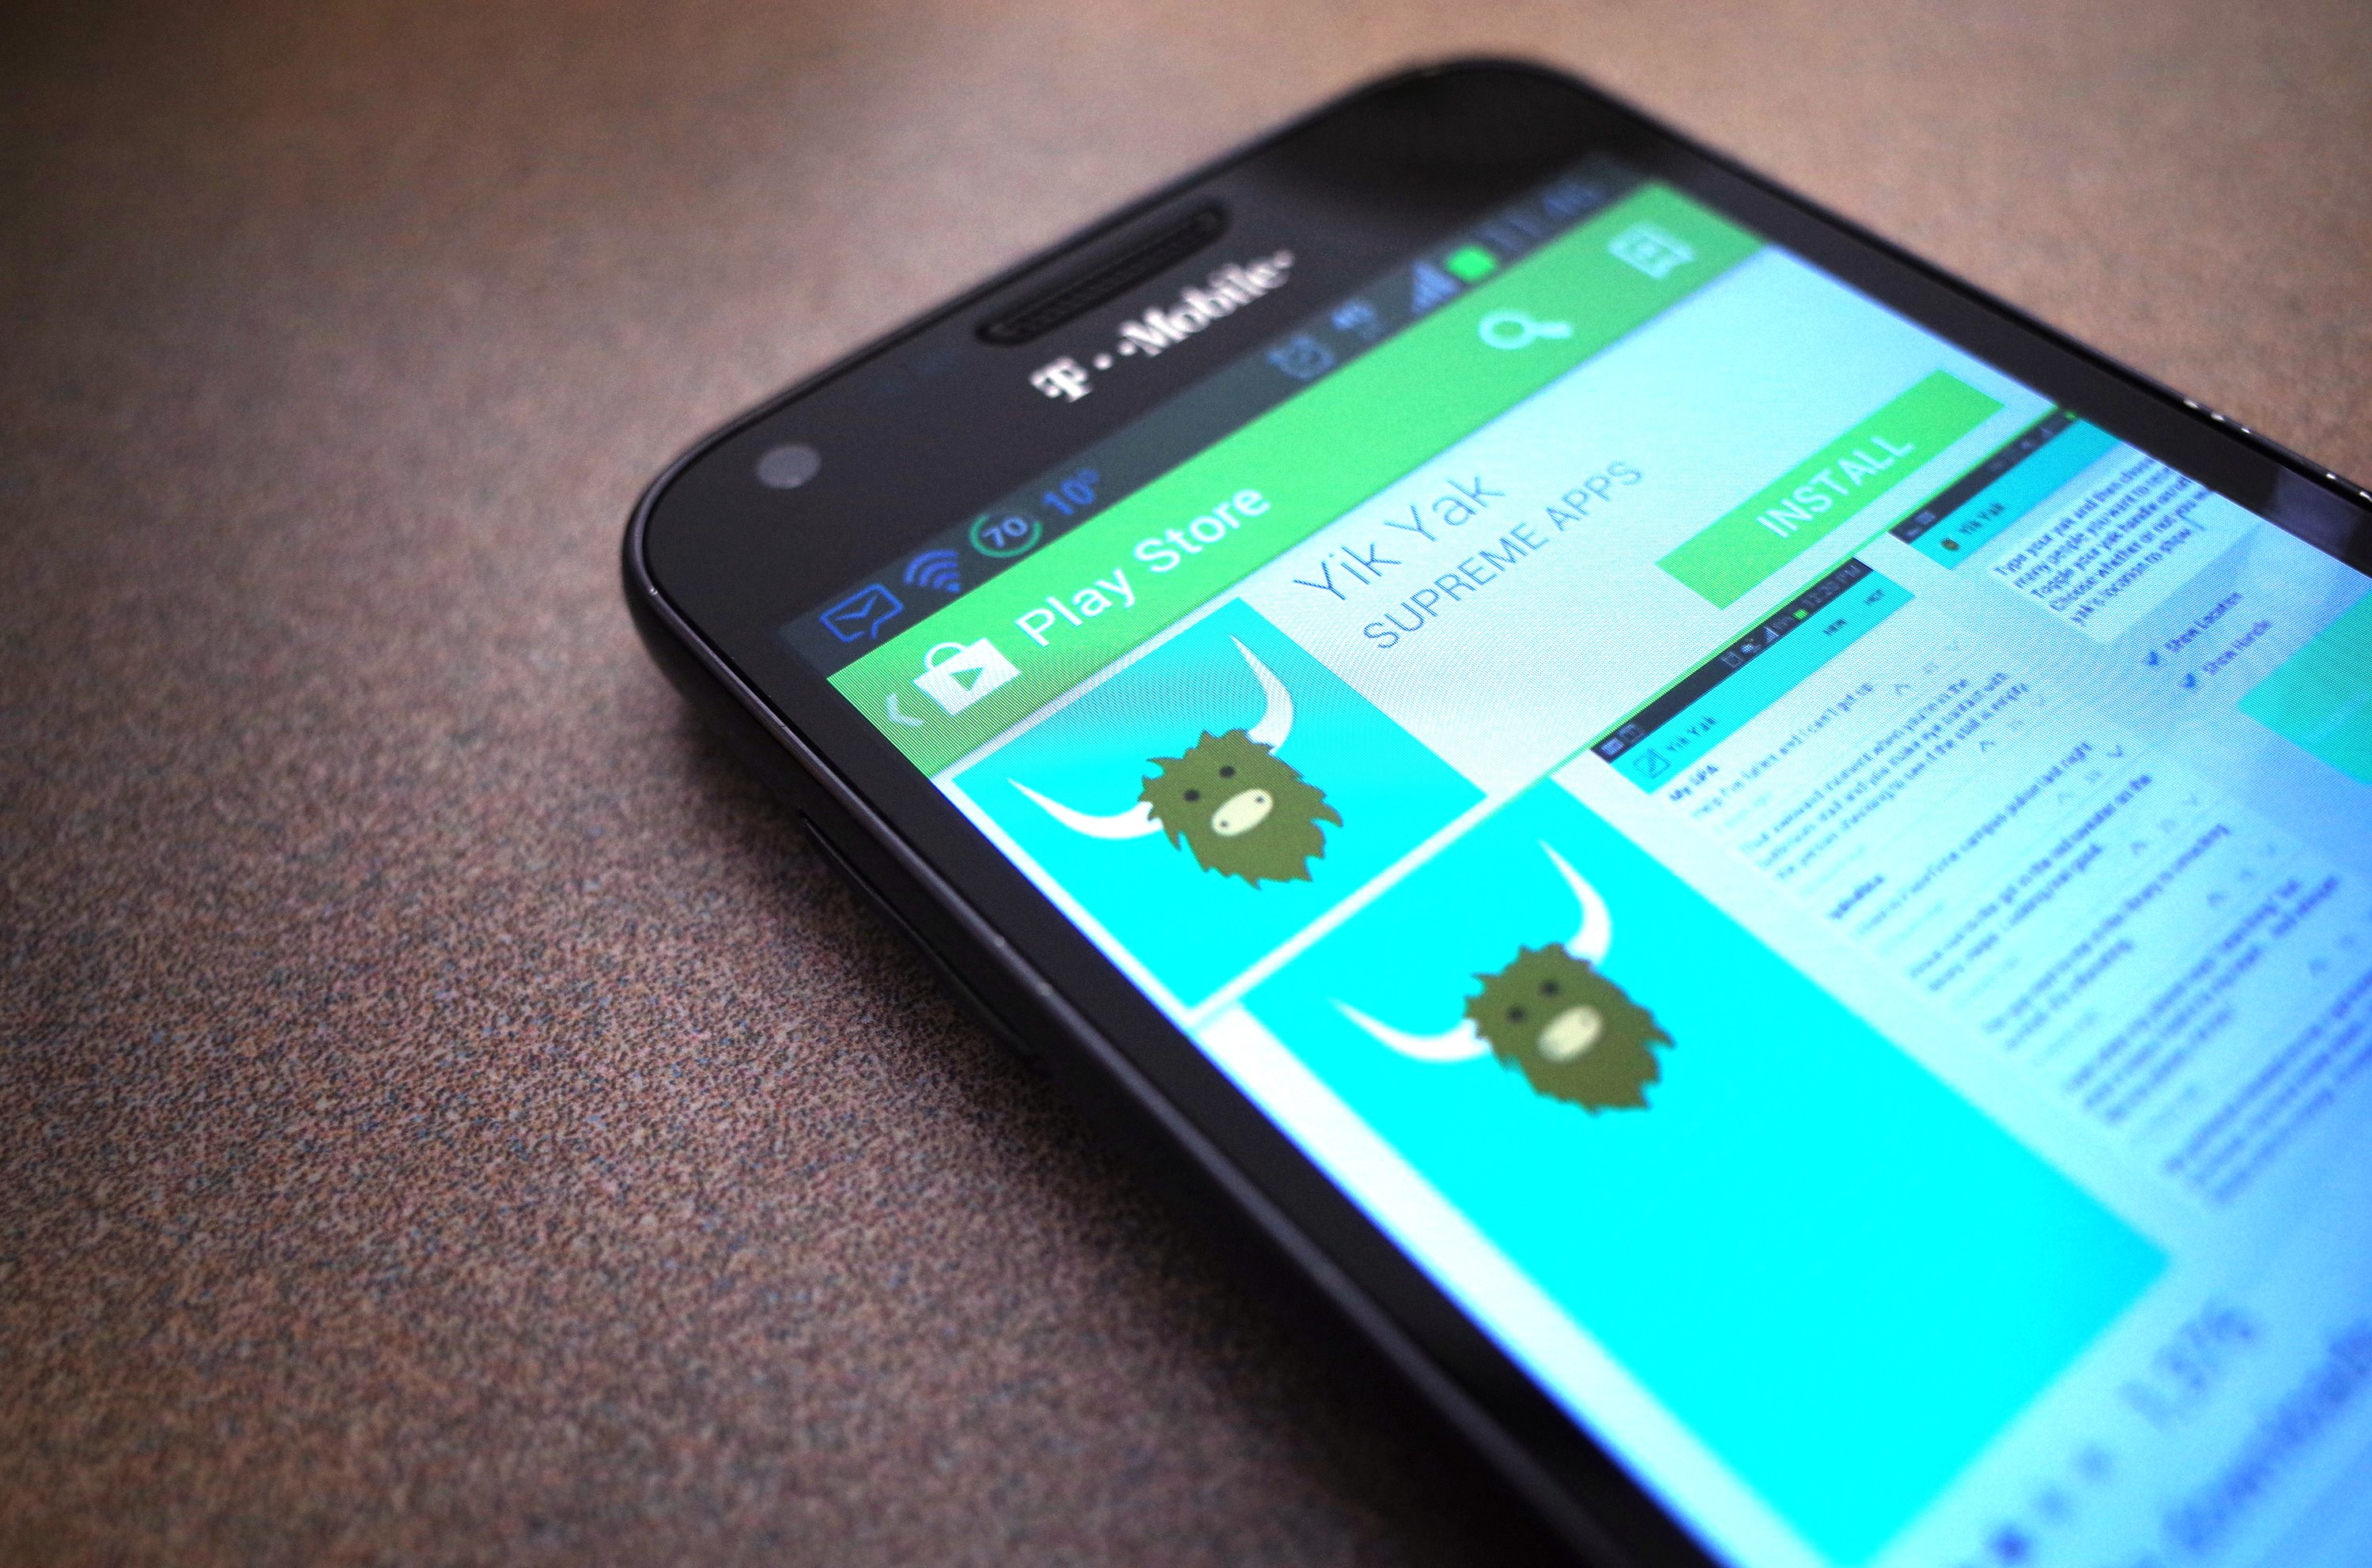 Yik Yak in the Google Play store.